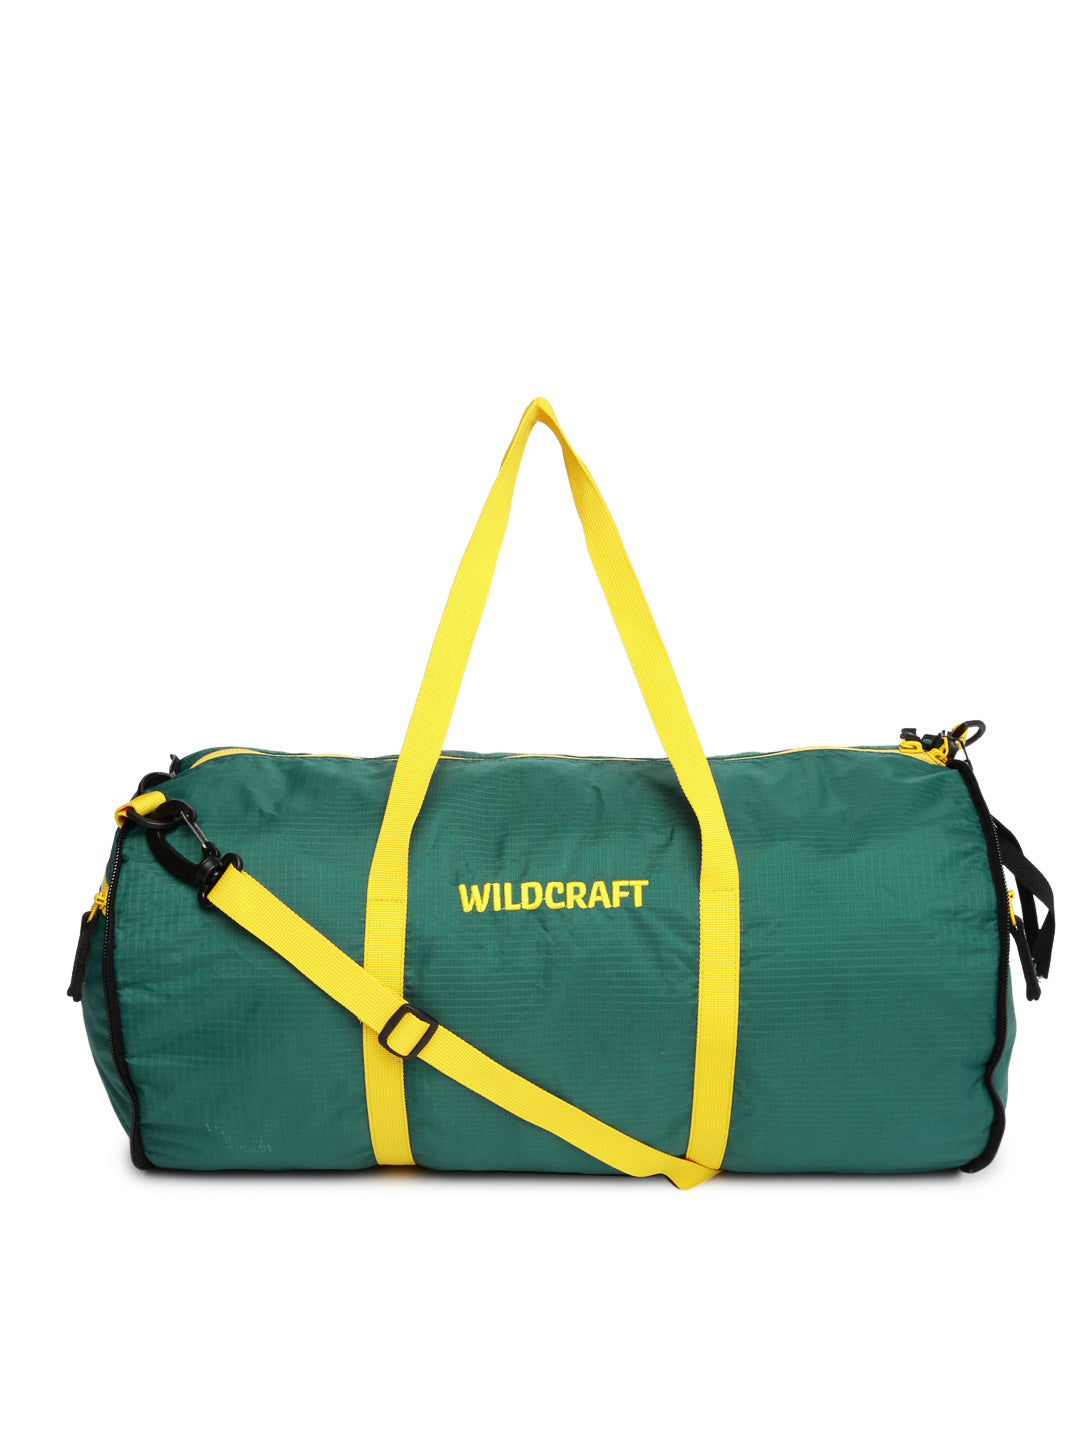 Wildcraft Frisbee Teal Duffle Bag